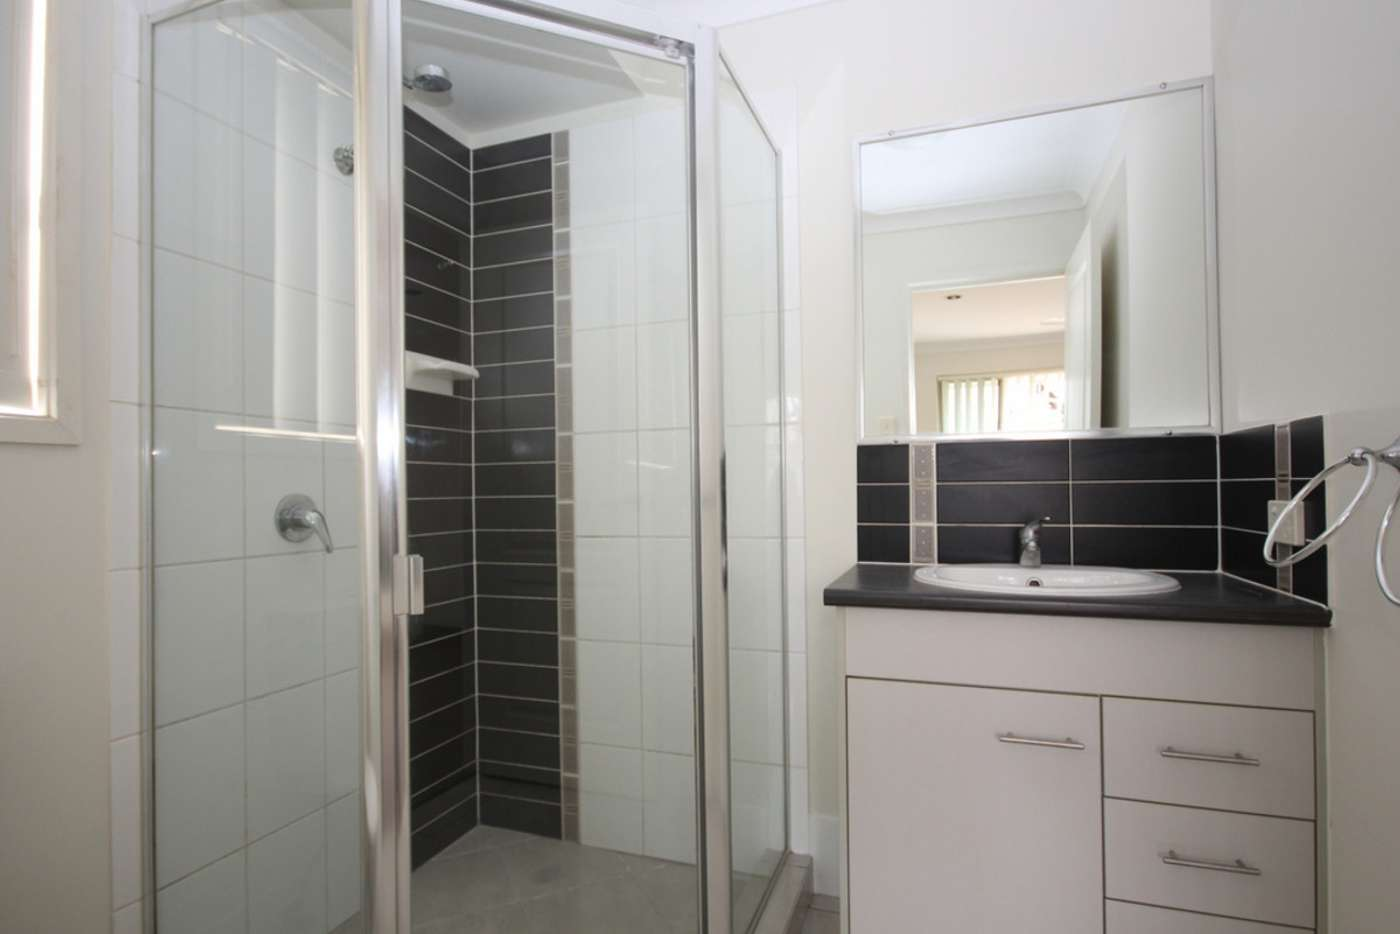 Sixth view of Homely house listing, 27 Aspinall Street, Leichhardt QLD 4305